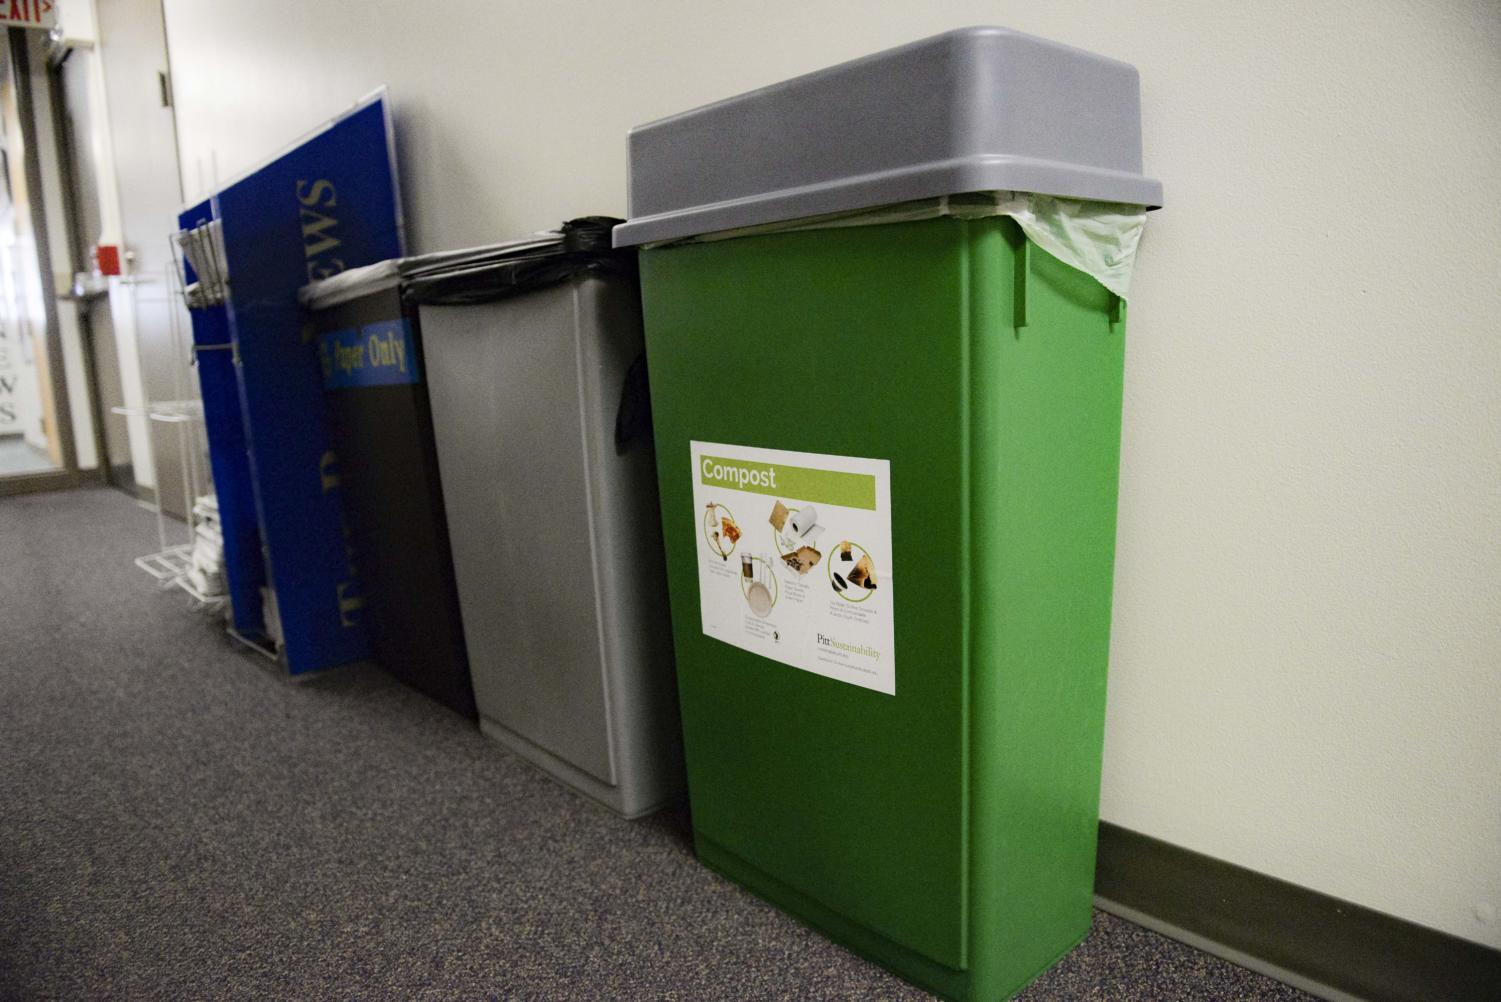 Compost bins are now located next to trash and recycling bins in the William Pitt Union.